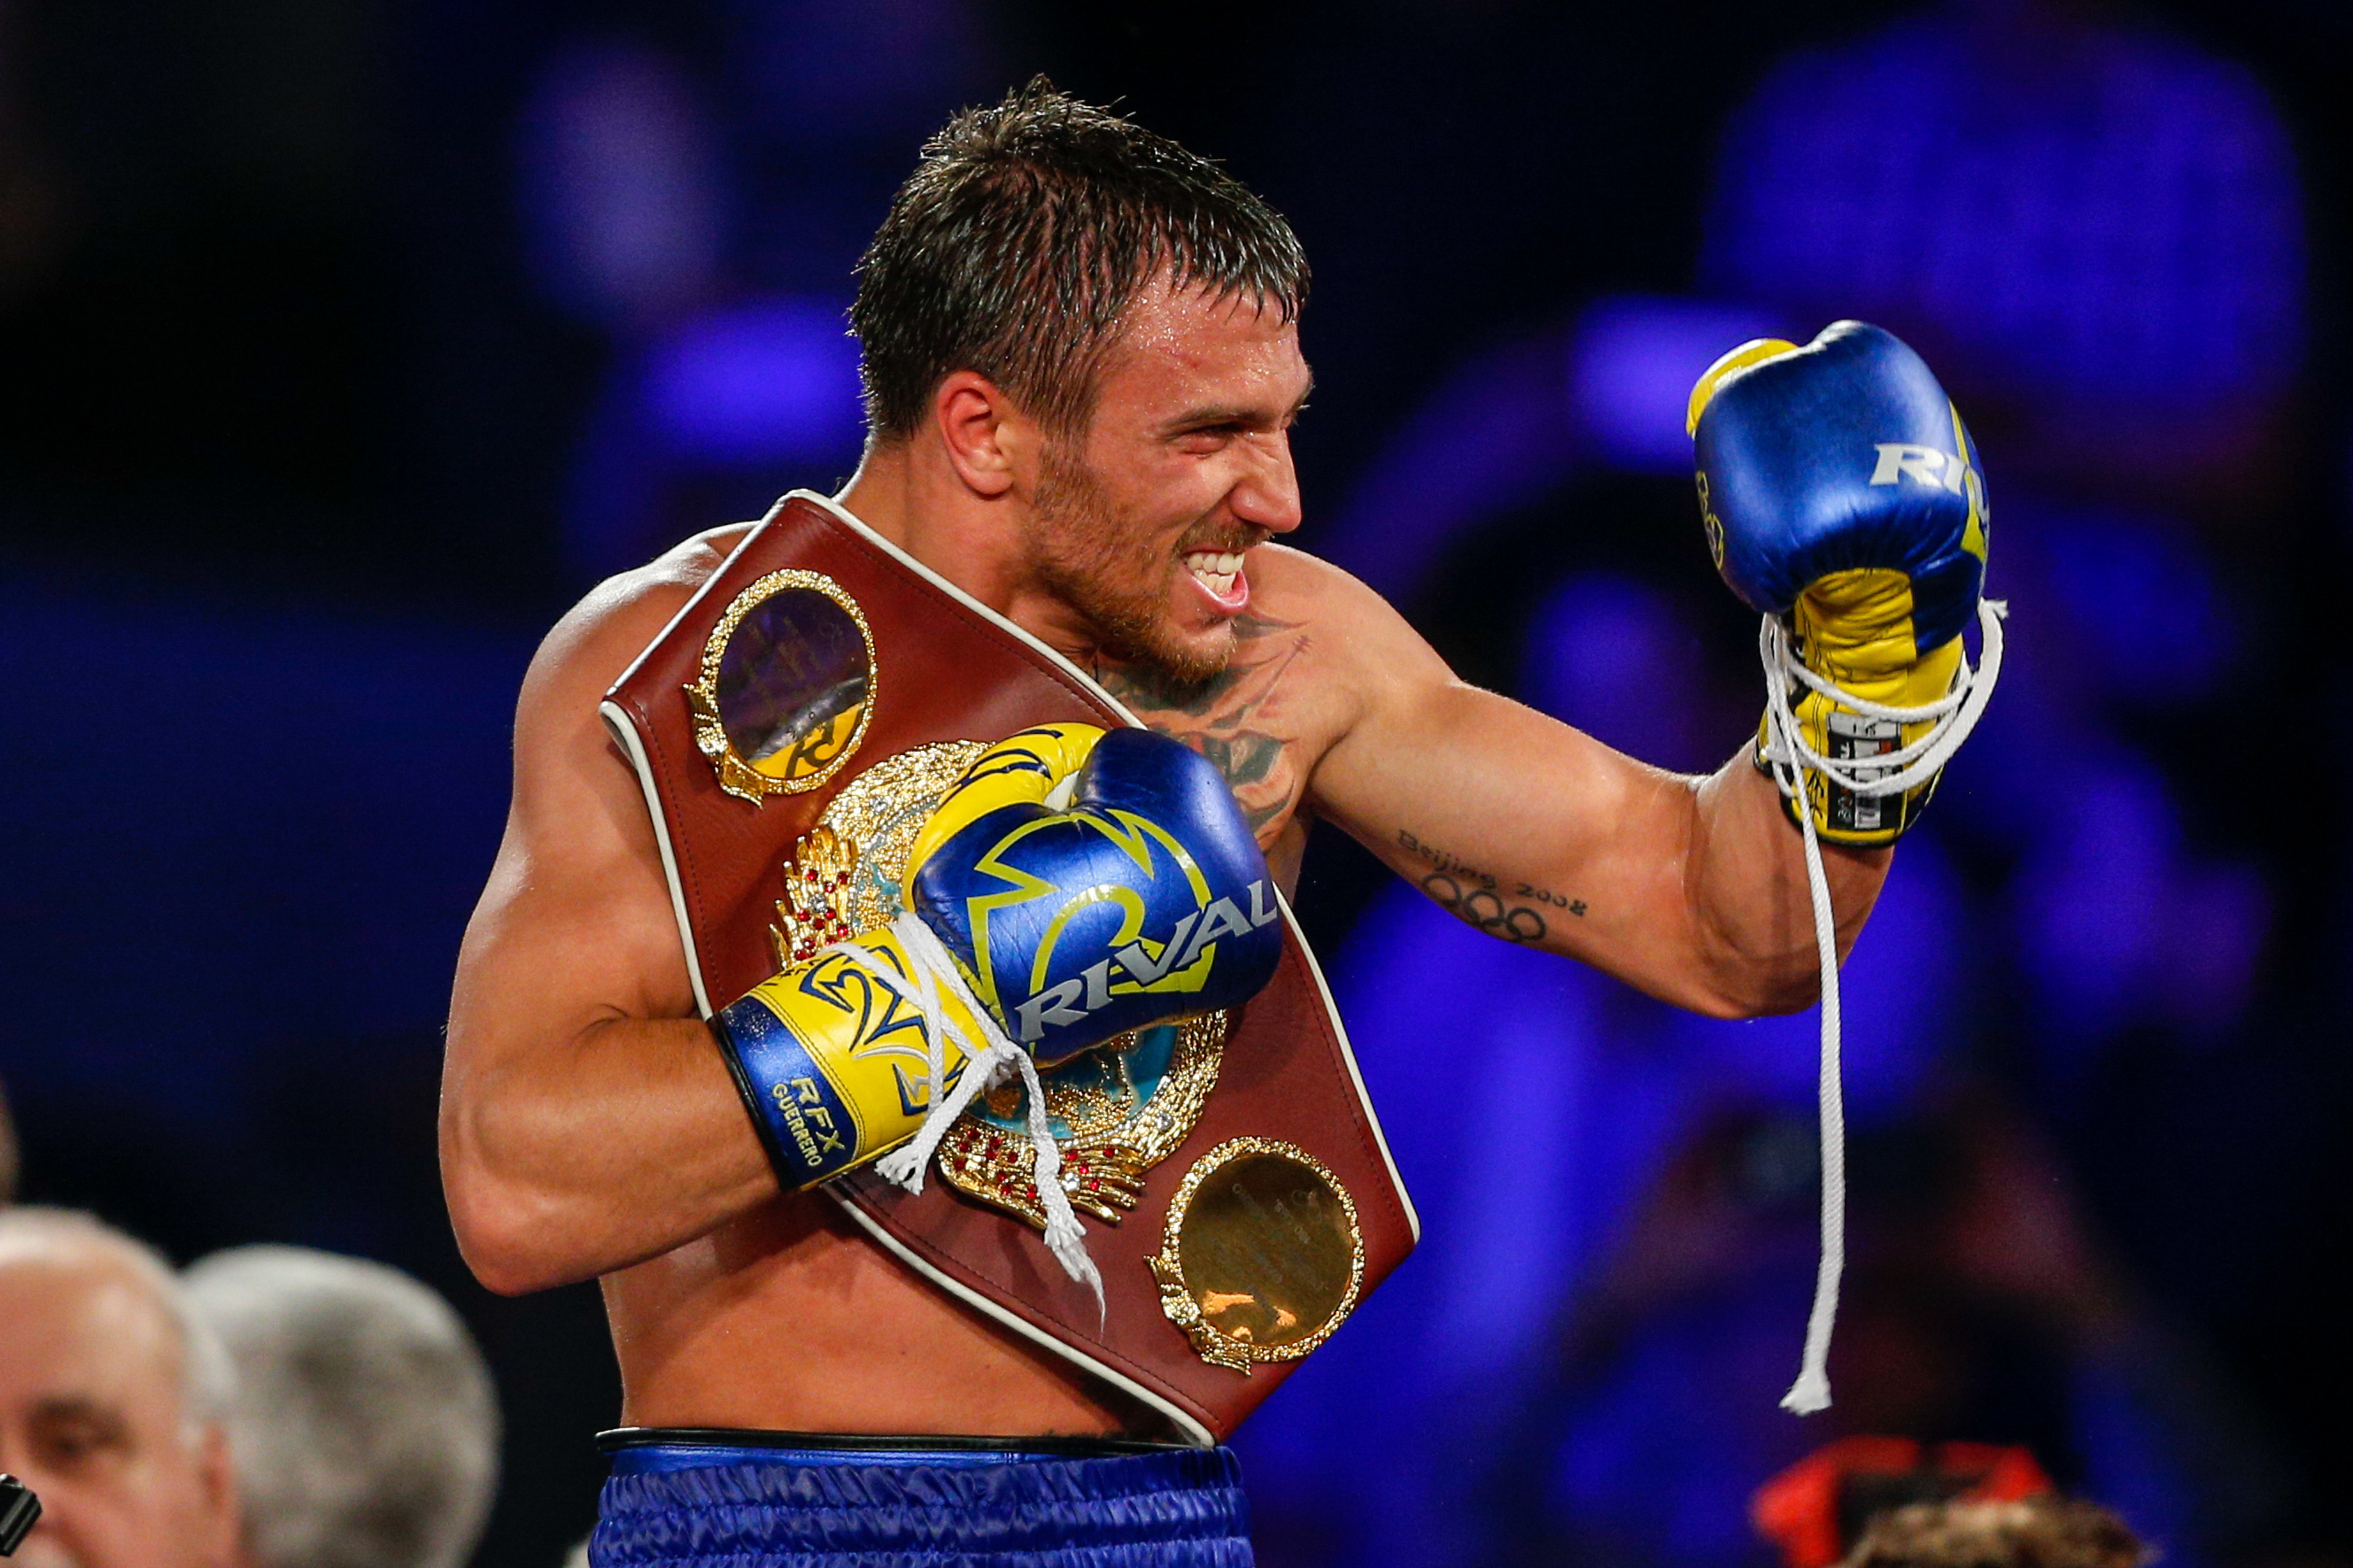 Vasiliy Lomachenko vs Anthony Crolla Set For April 12 In Los Angeles